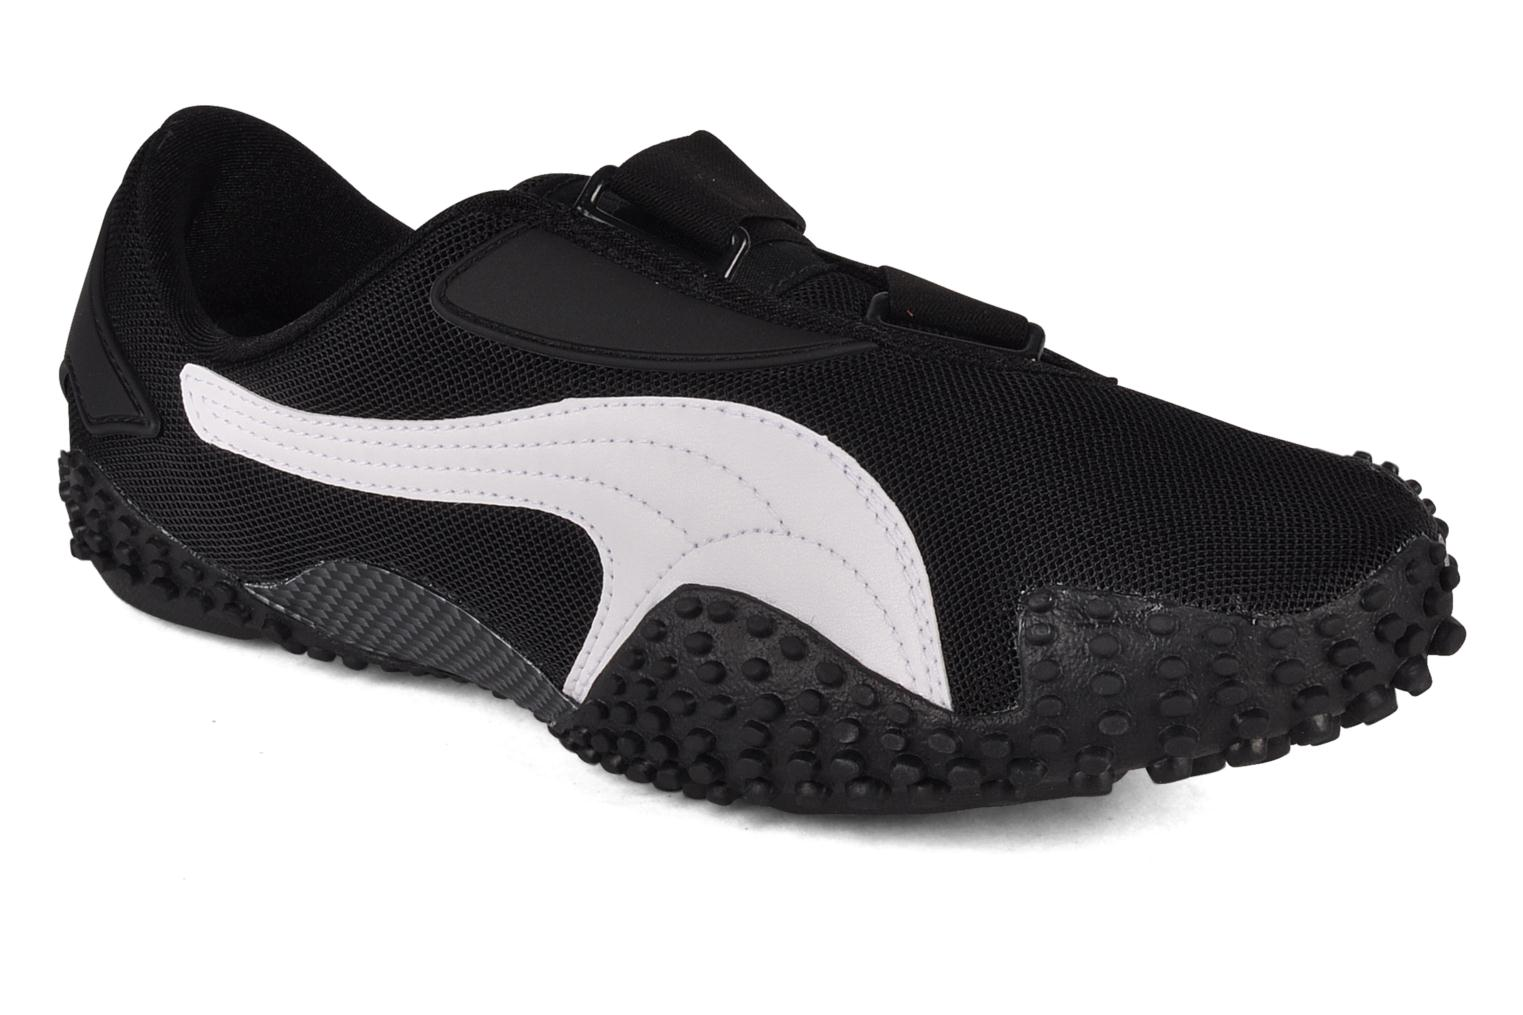 Puma Mostro mesh Trainers in Black at Sarenza.co.uk (44444)